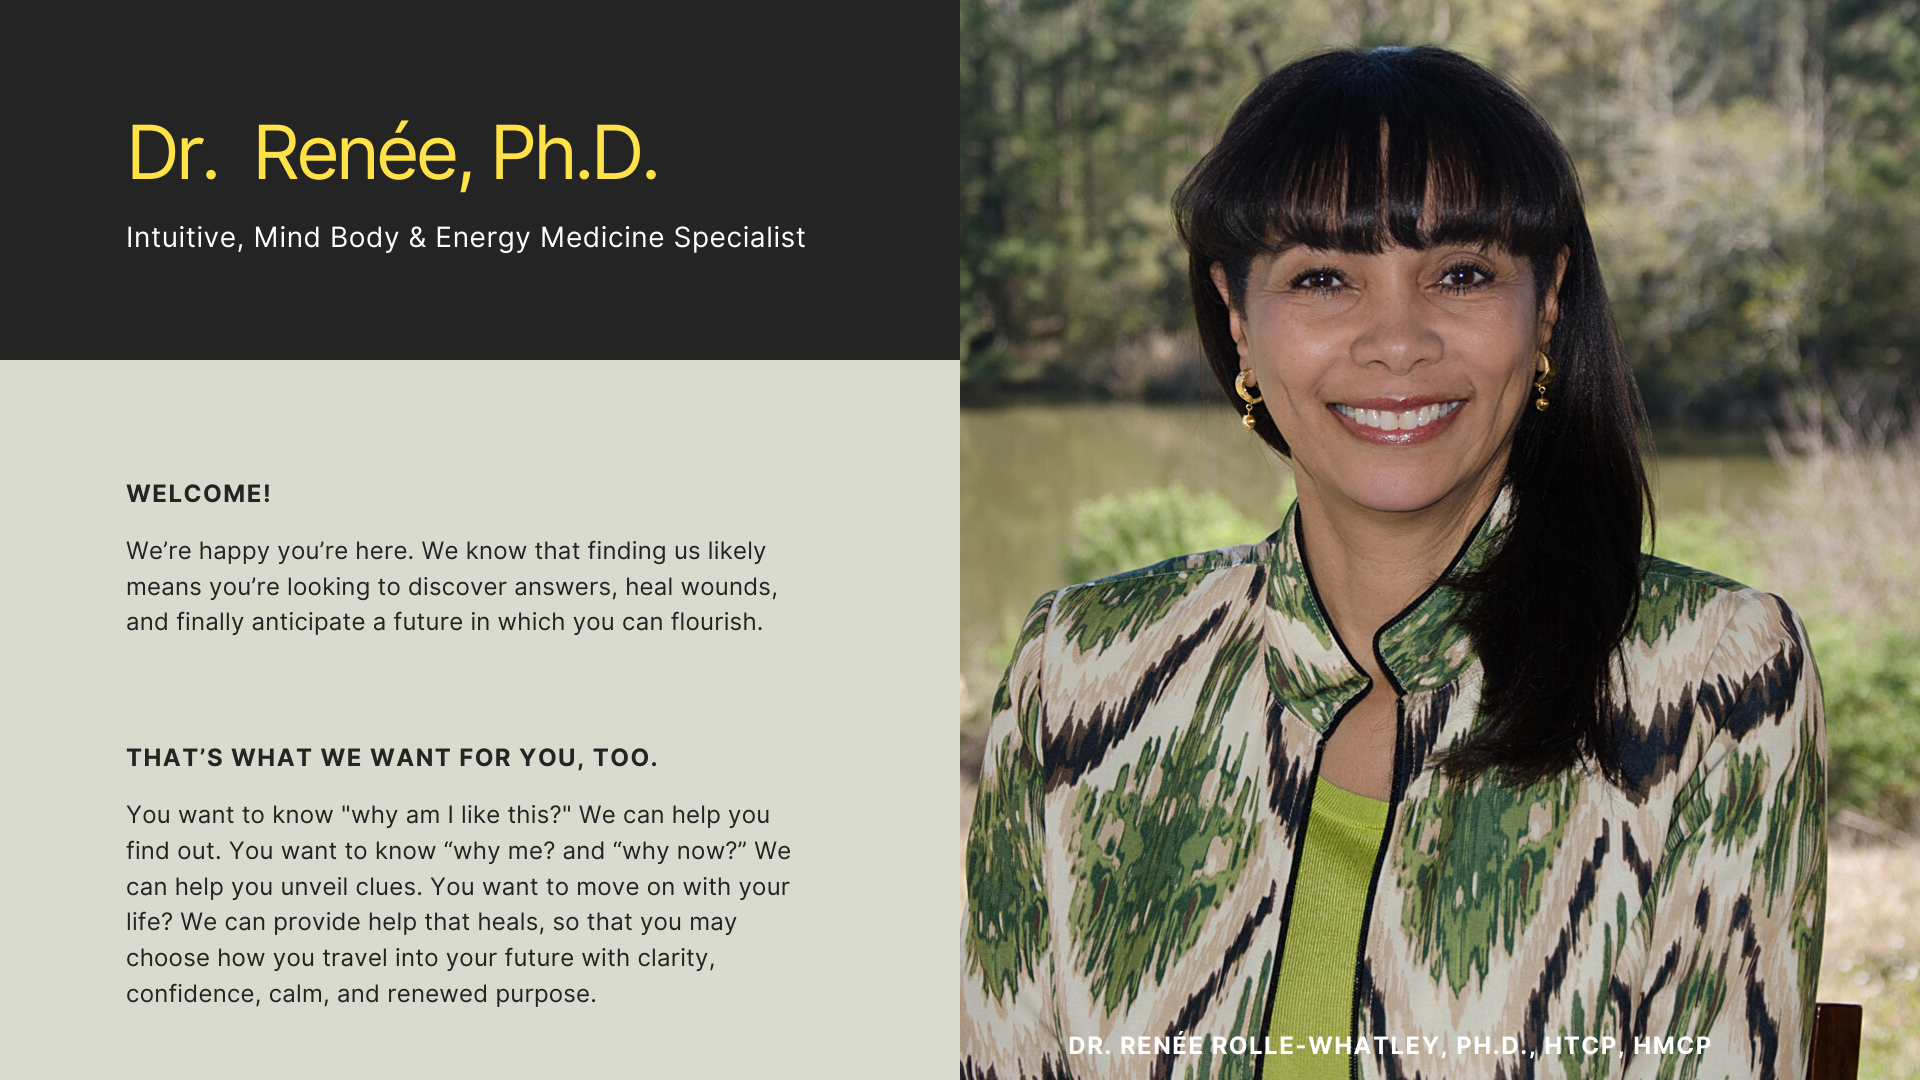 Welcome and photo of Dr. Renee Rolle-Whatley